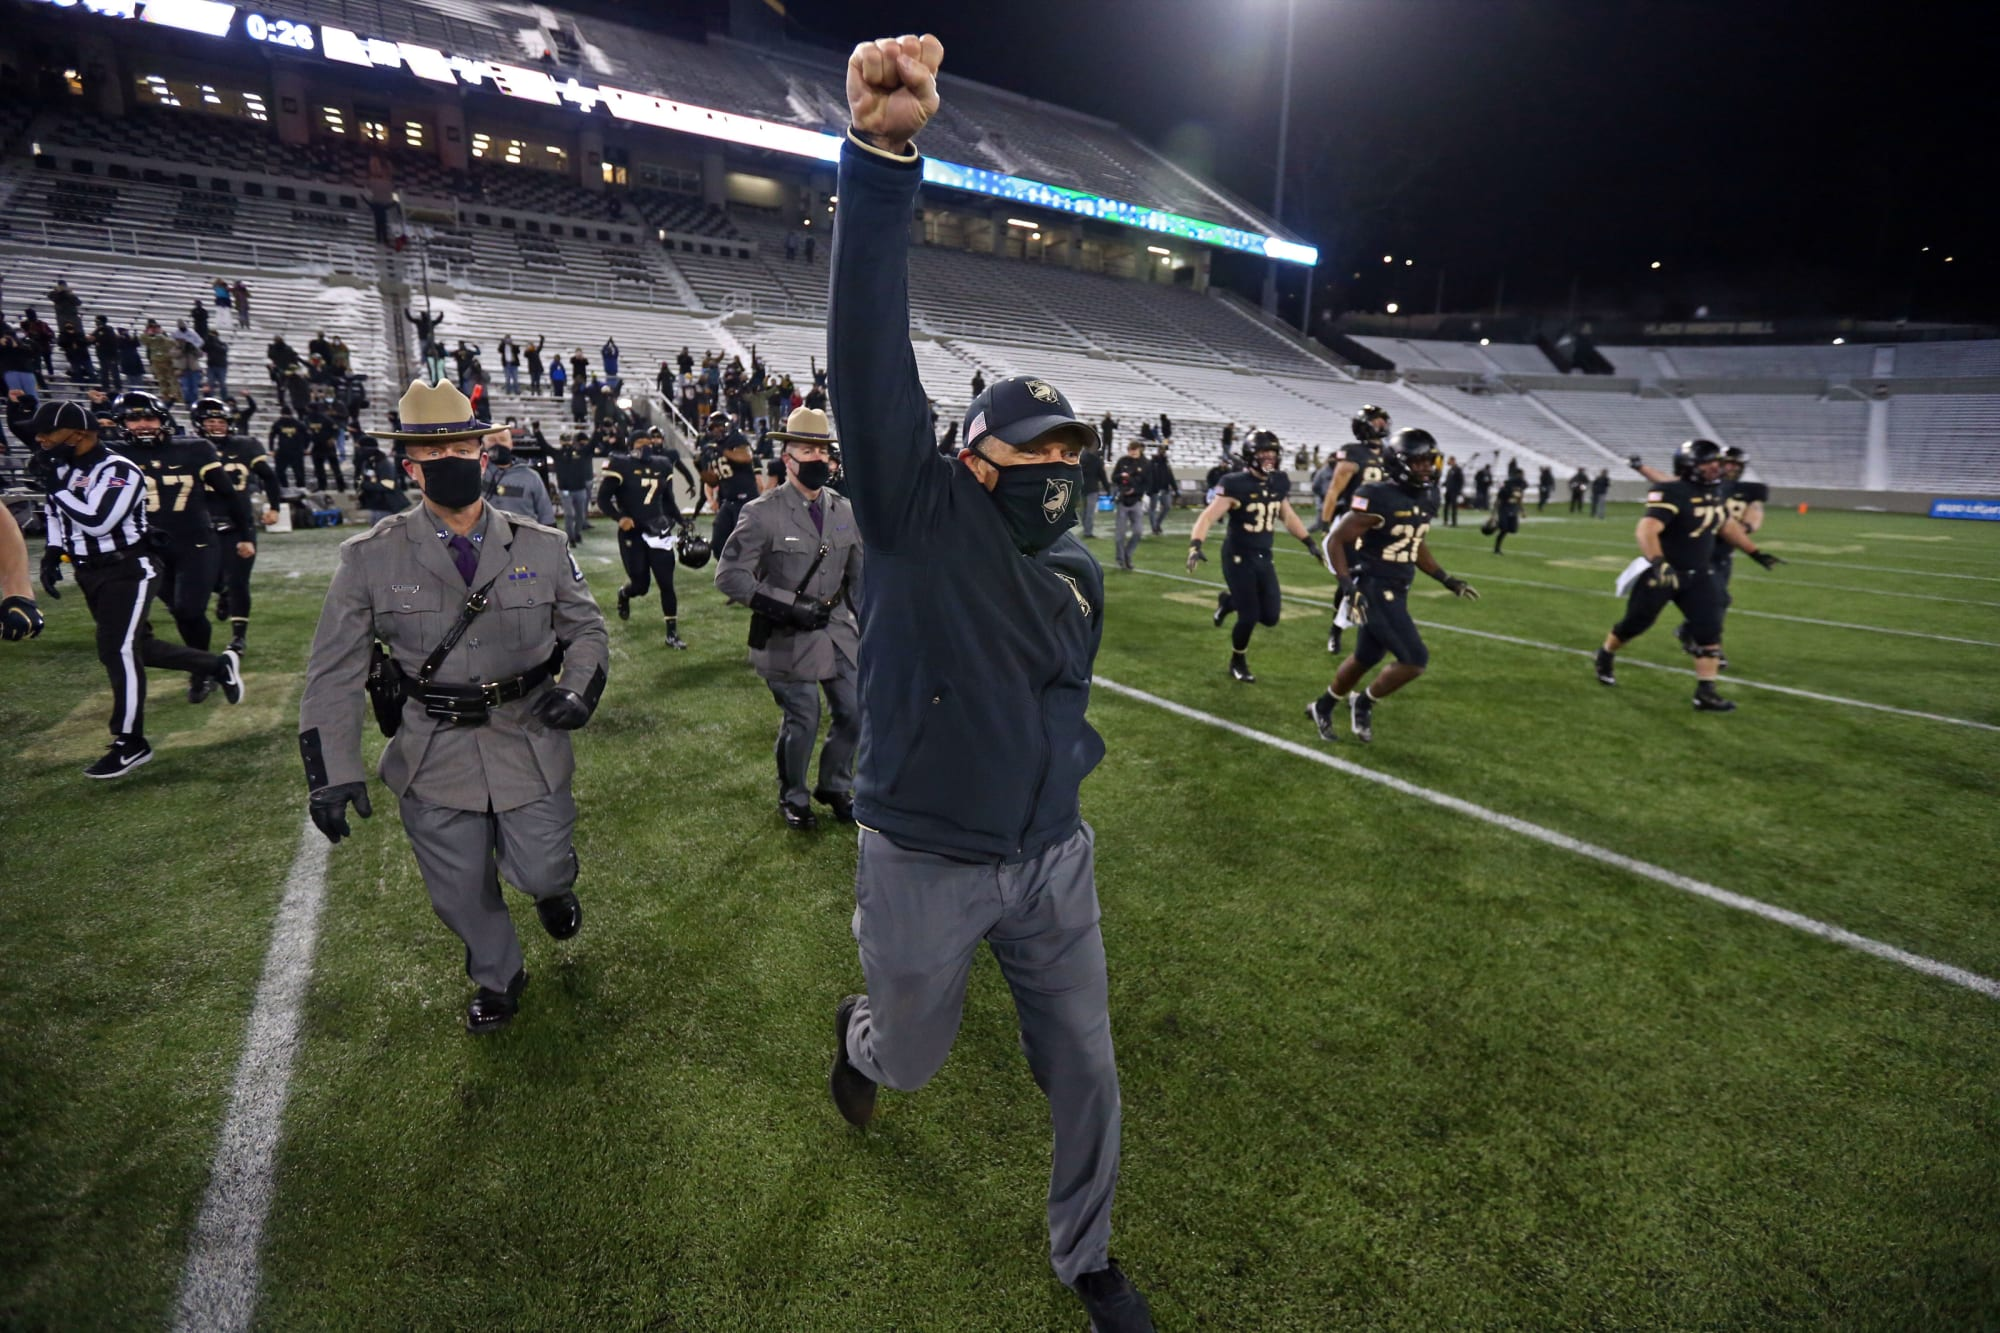 Kansas football could be a good fit for Jeff Monken